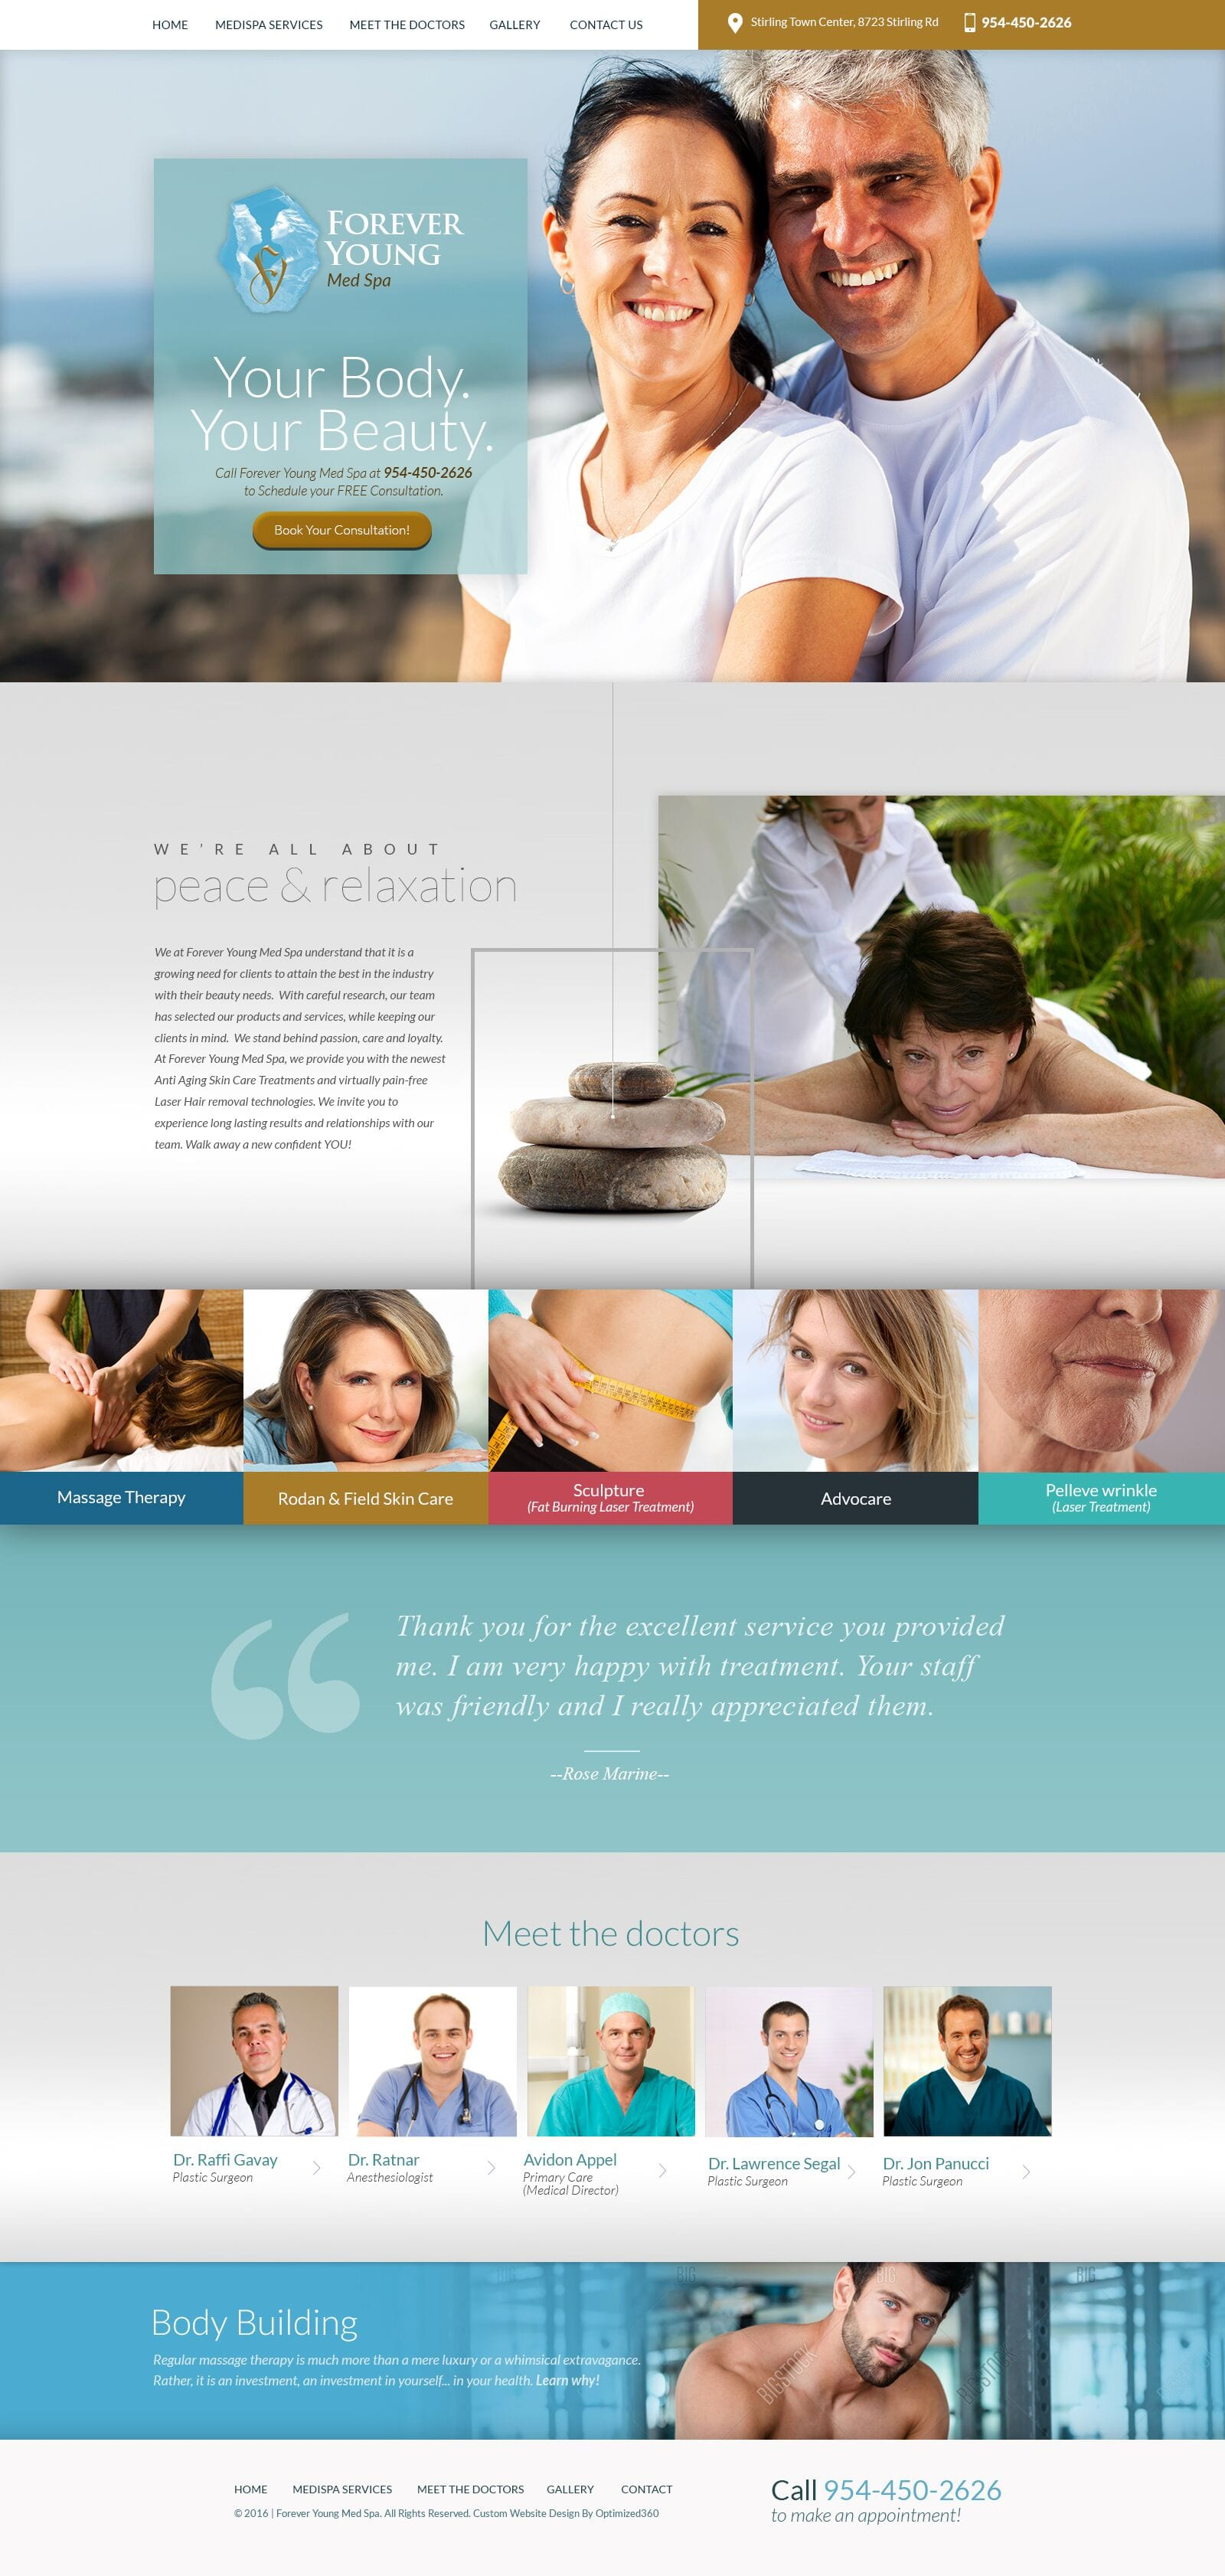 Forever Young Medical Spa Website